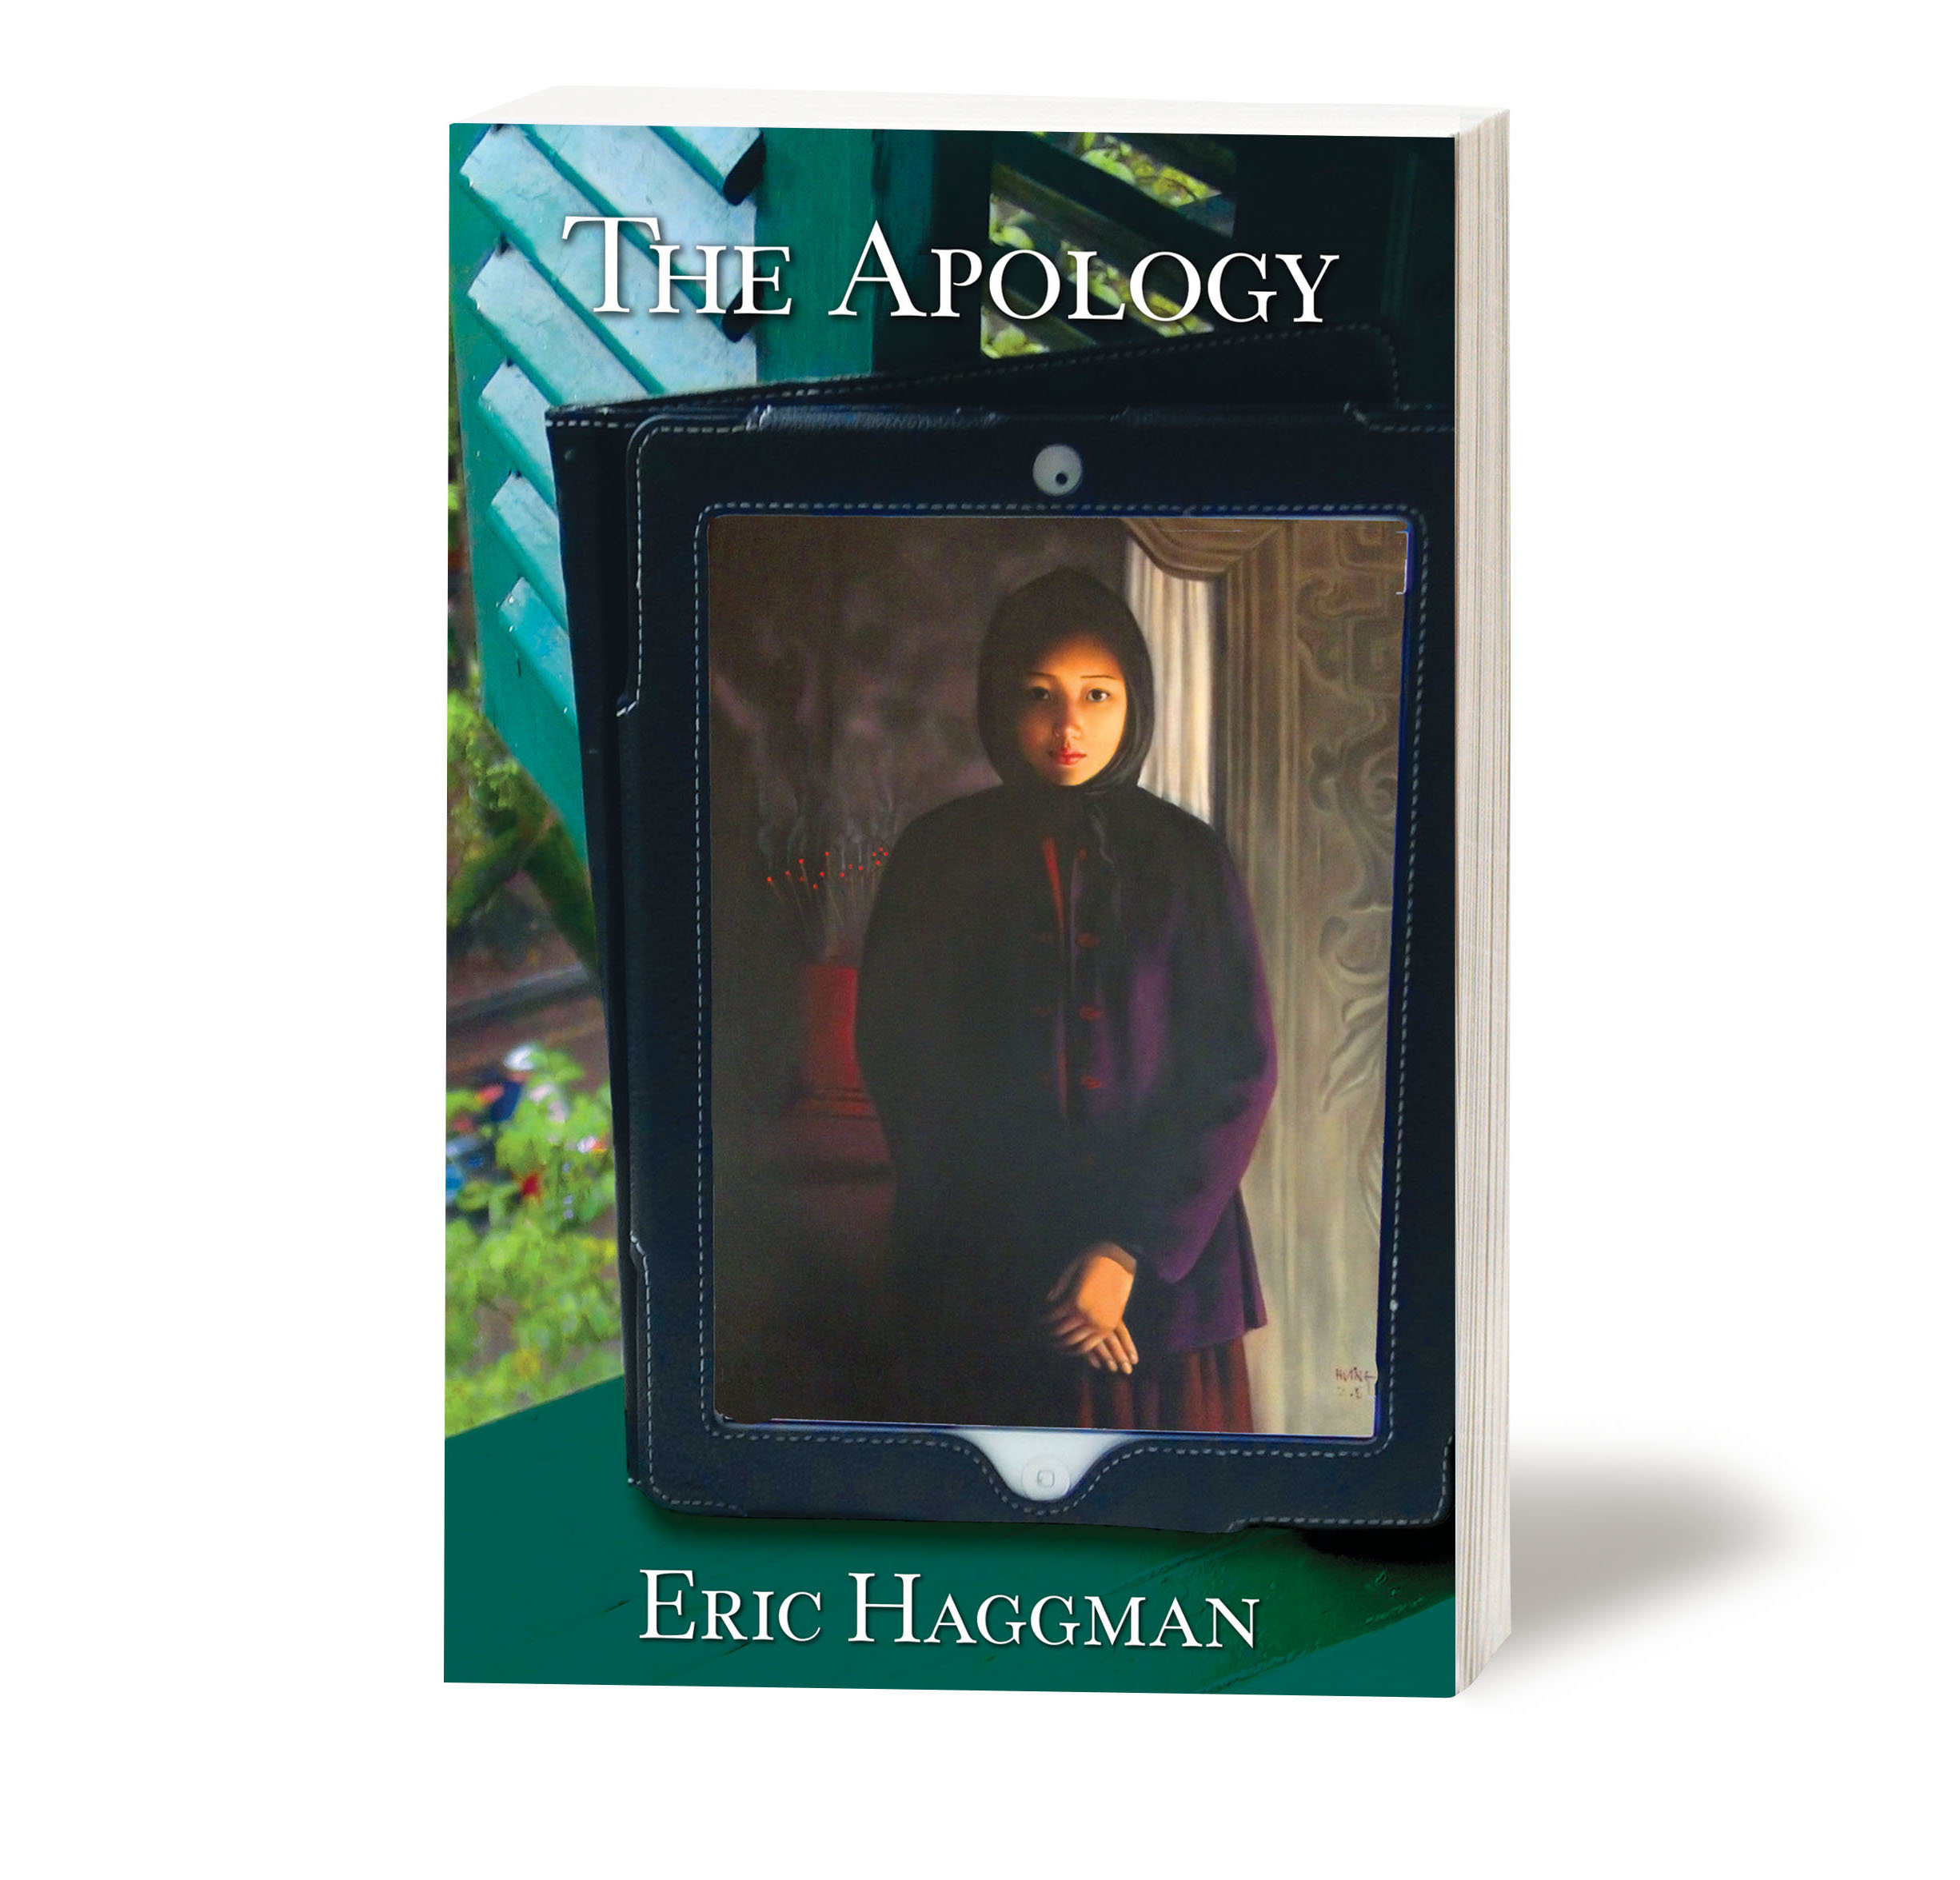 The Apology by Eric Haggman